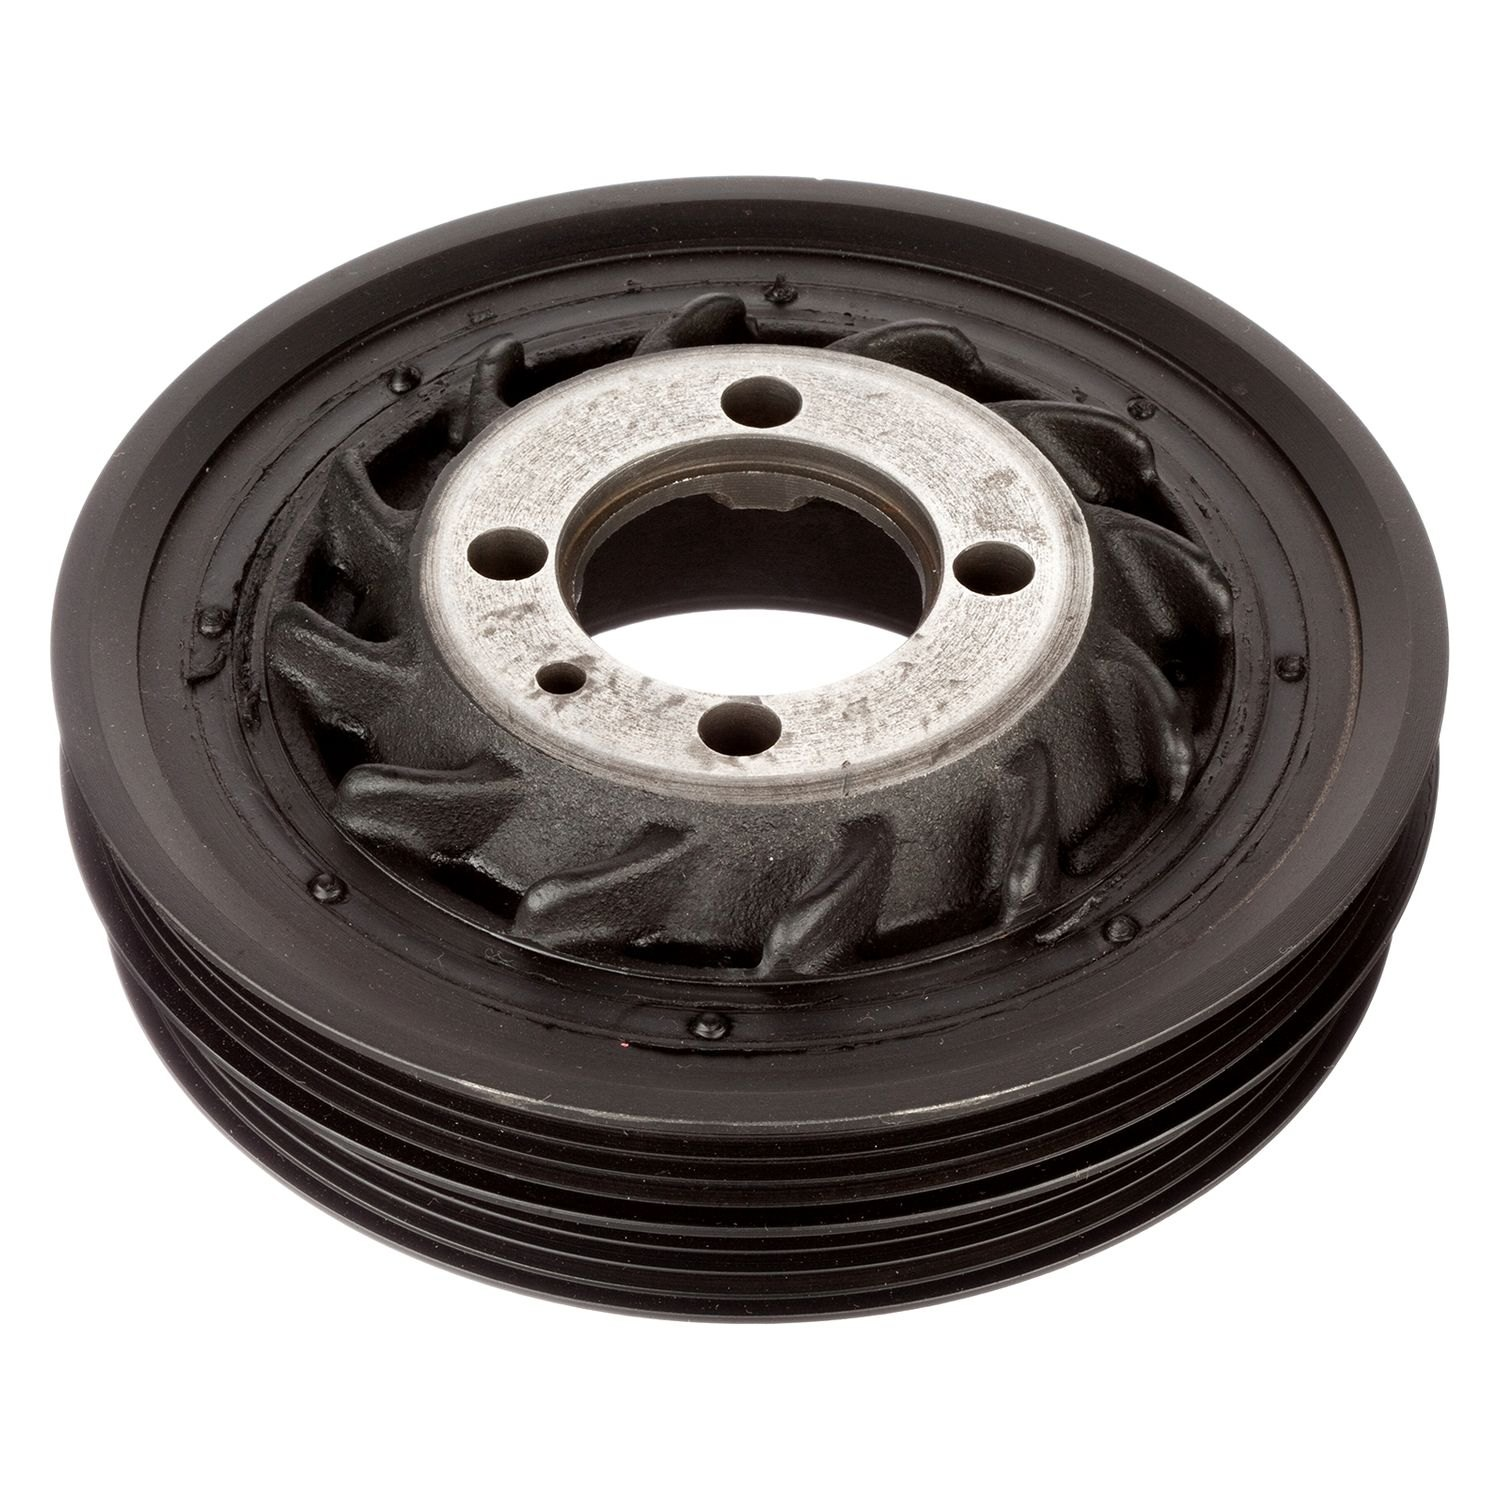 C besides Civic Valve furthermore M Nul Ksugf Thpimvduiq as well  also . on 1995 honda civic crankshaft pulley